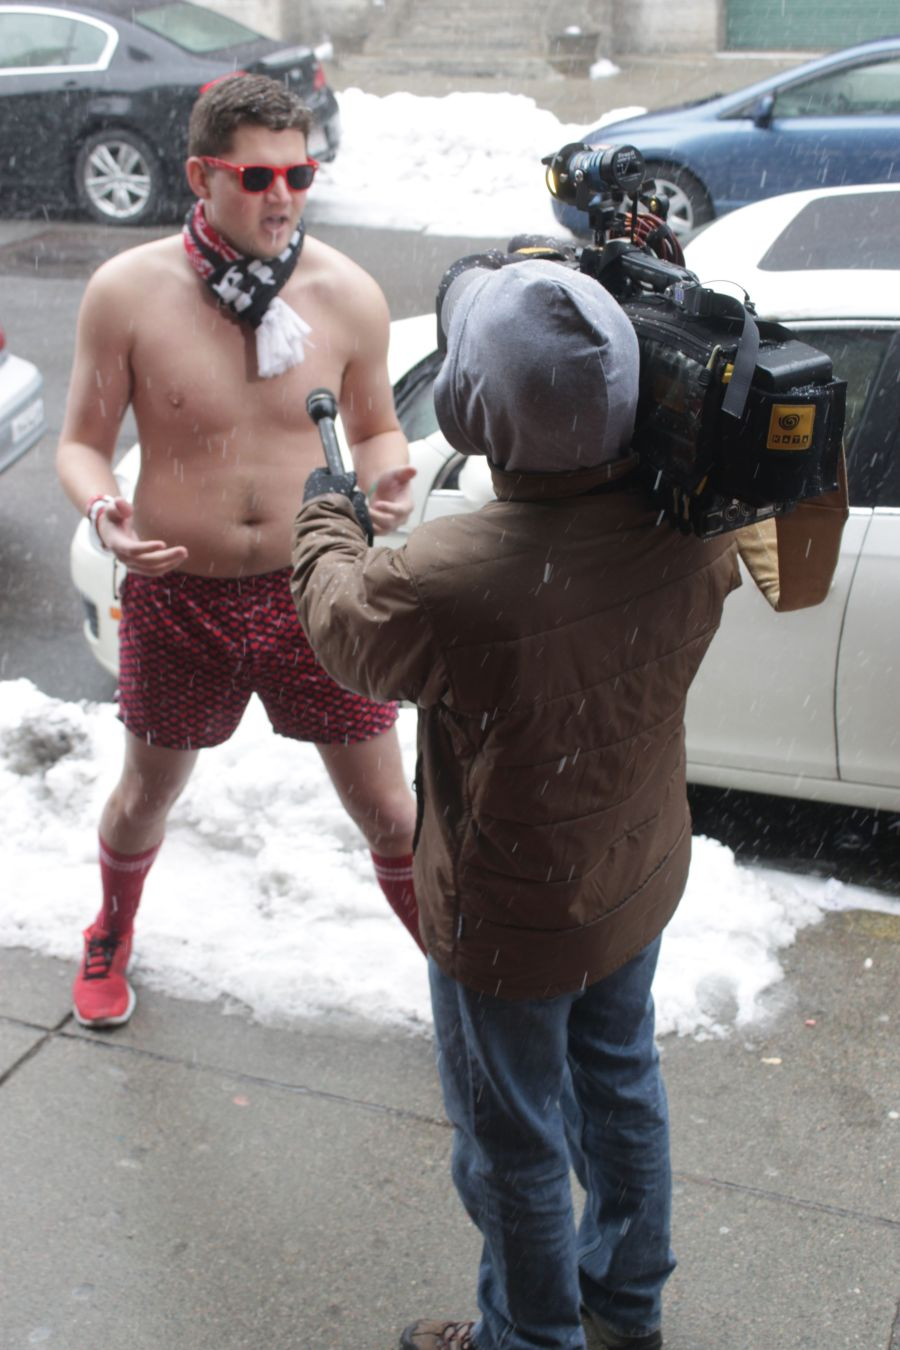 boston cupid undies run february 15 chad leathers interview